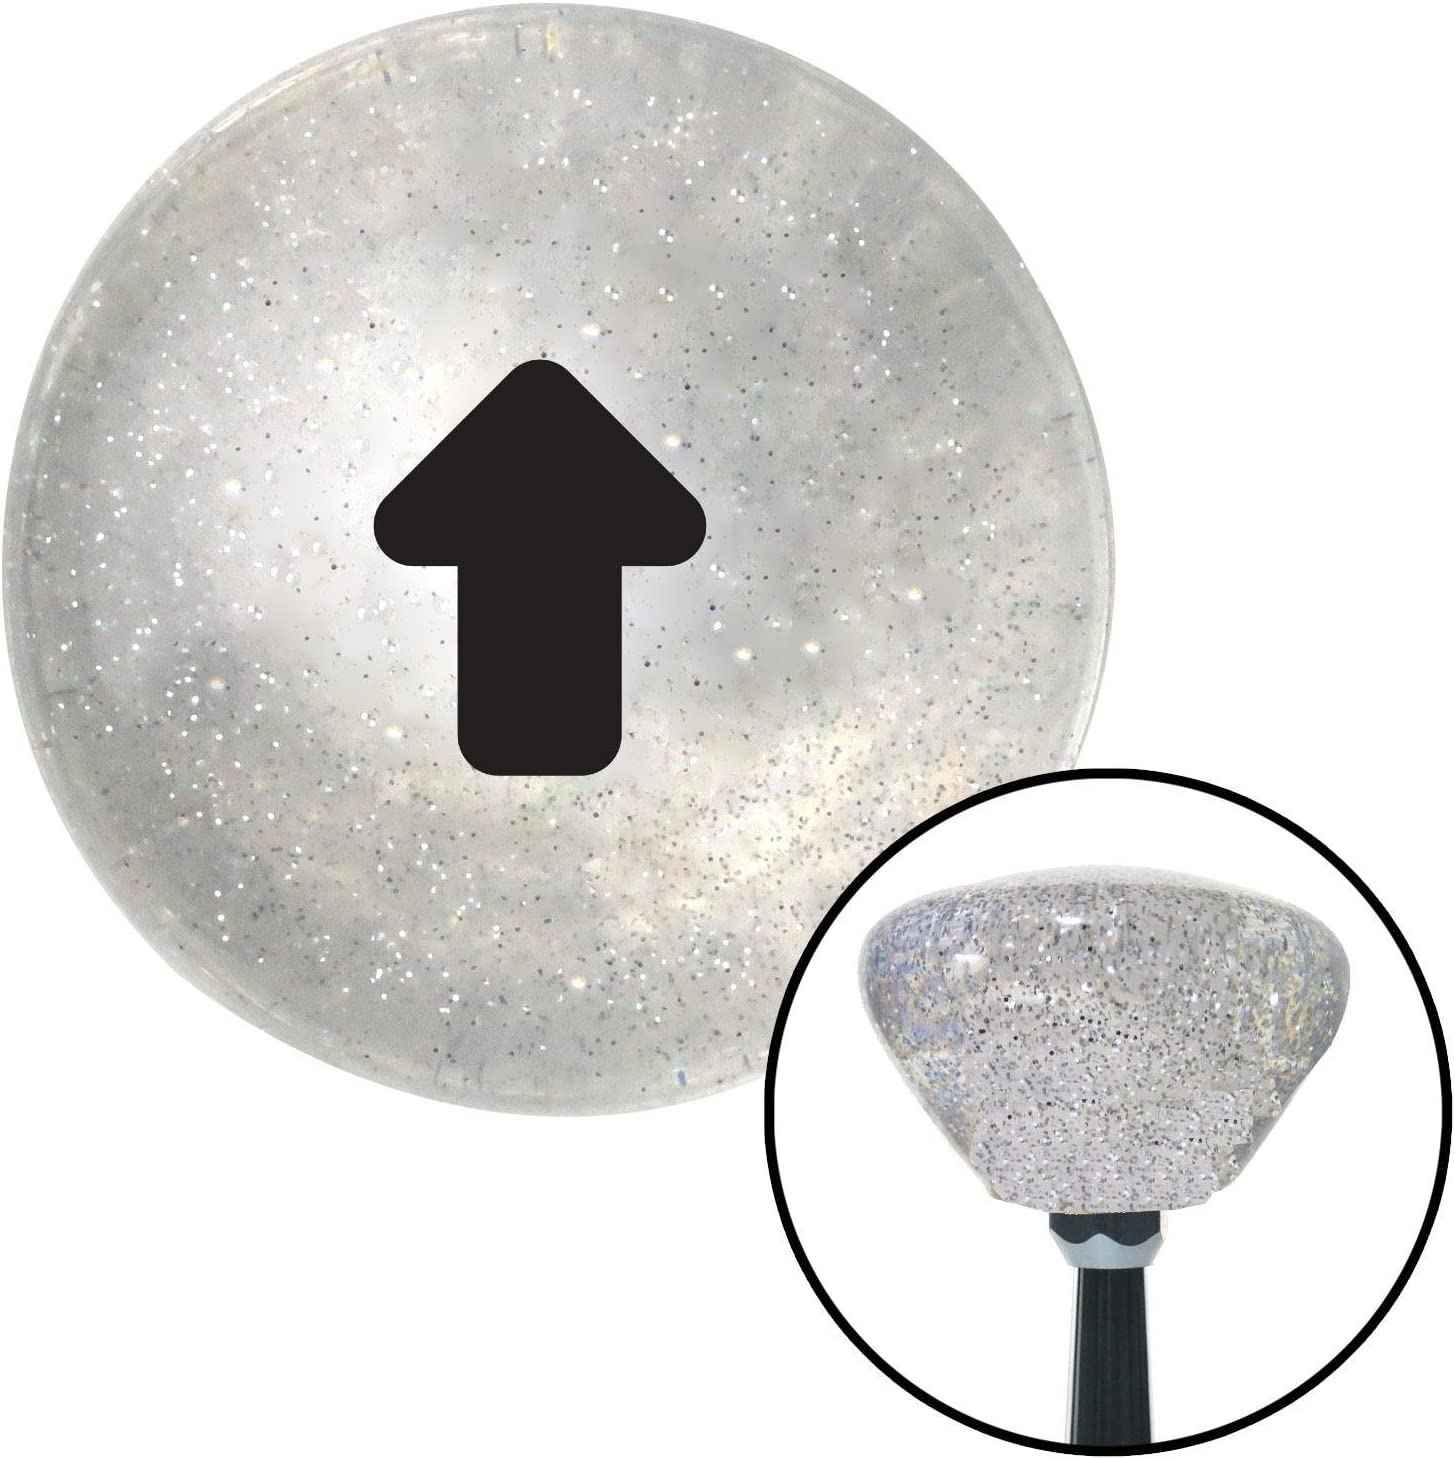 American Shifter 159504 Clear Retro Metal Flake Shift Knob with M16 x 1.5 Insert Black Bubble Solid Arrow Up